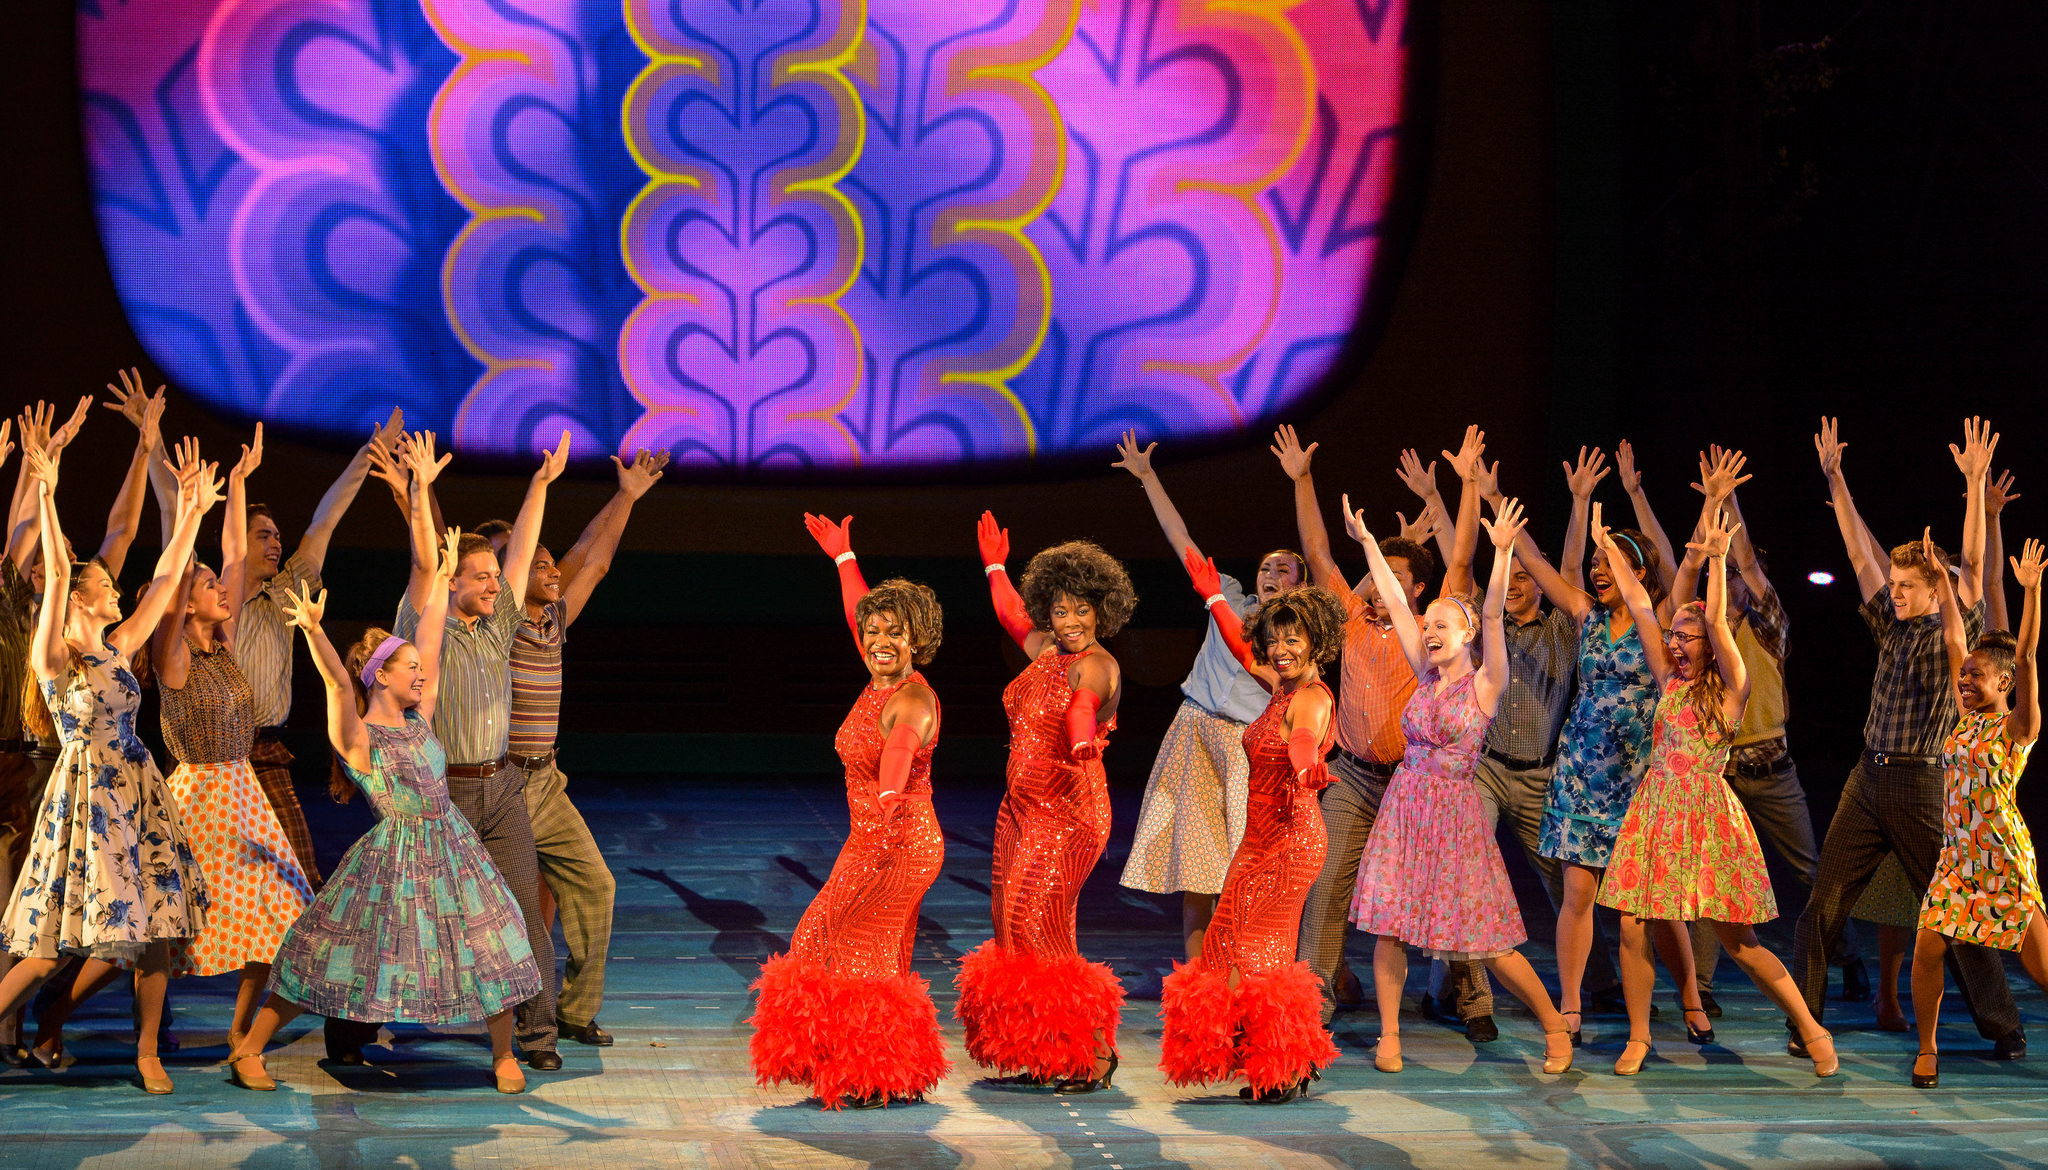 Dynamite, Hairspray, The Muny